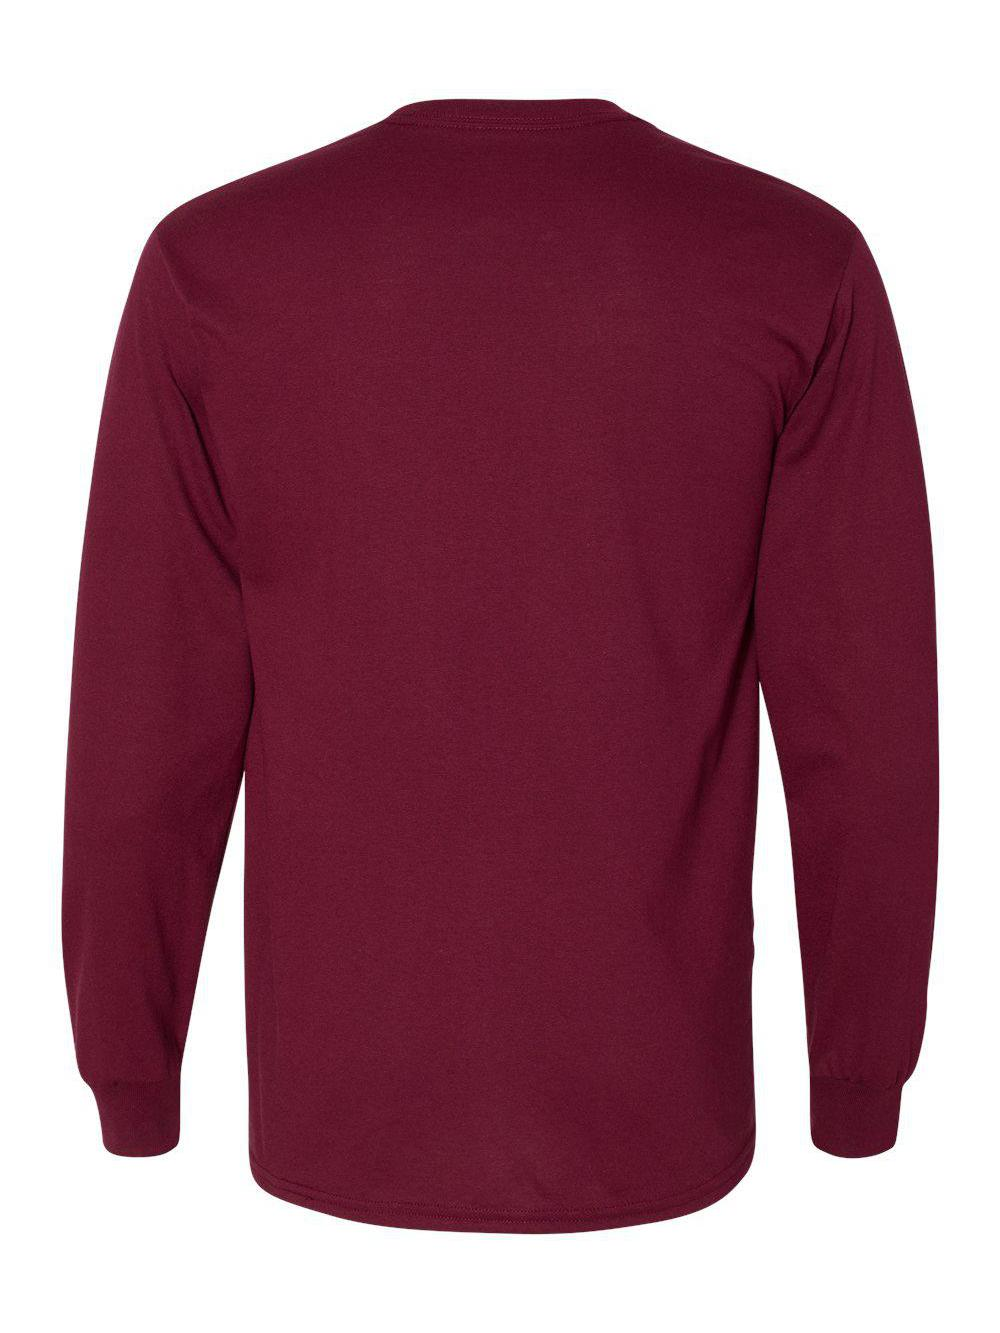 Gildan-DryBlend-50-50-Long-Sleeve-T-Shirt-8400 thumbnail 22